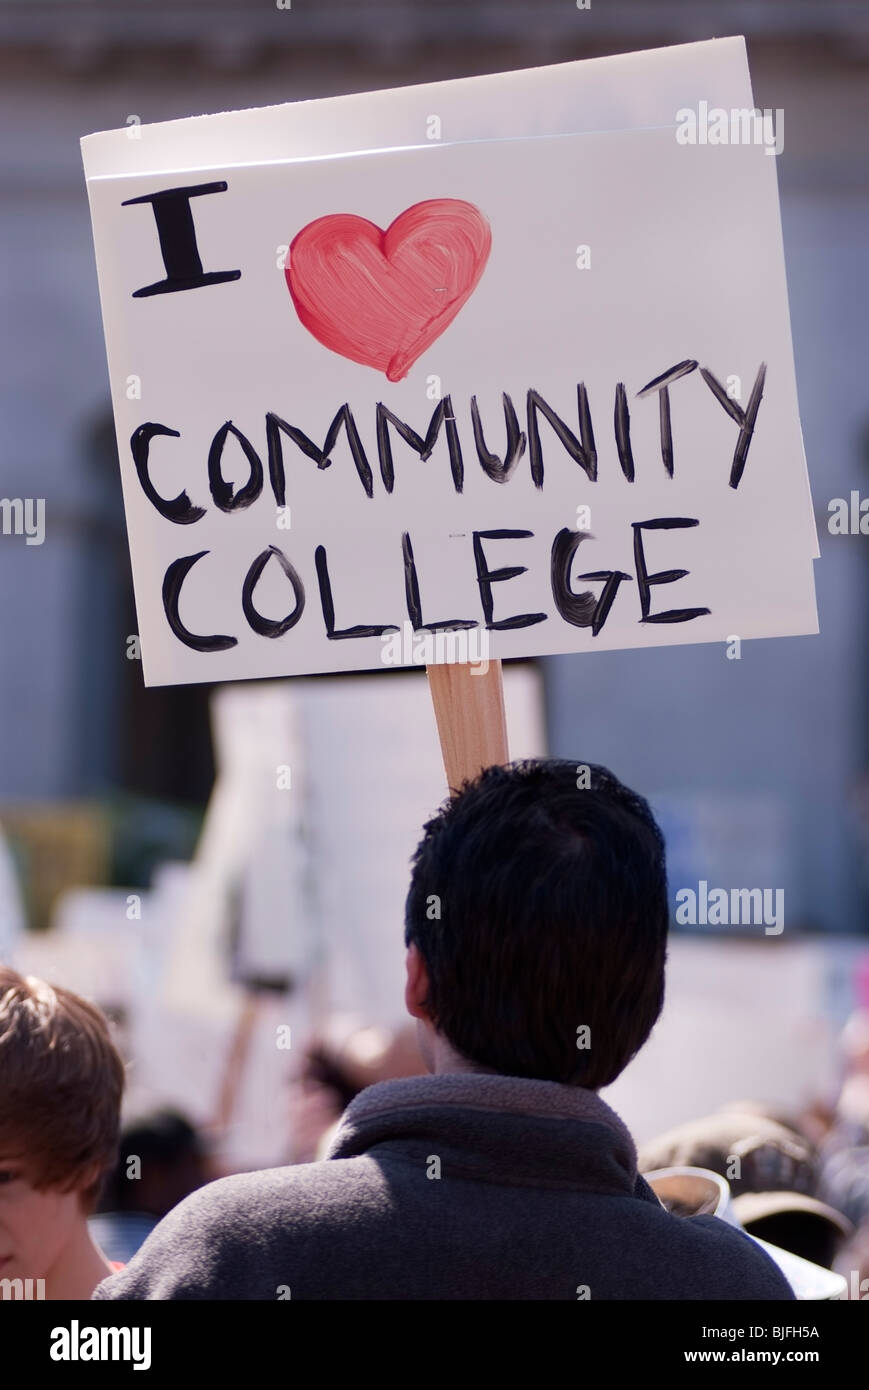 March on March, More than 5,000 college students demonstrate against budget cuts at the state capitol in Sacramento, - Stock Image